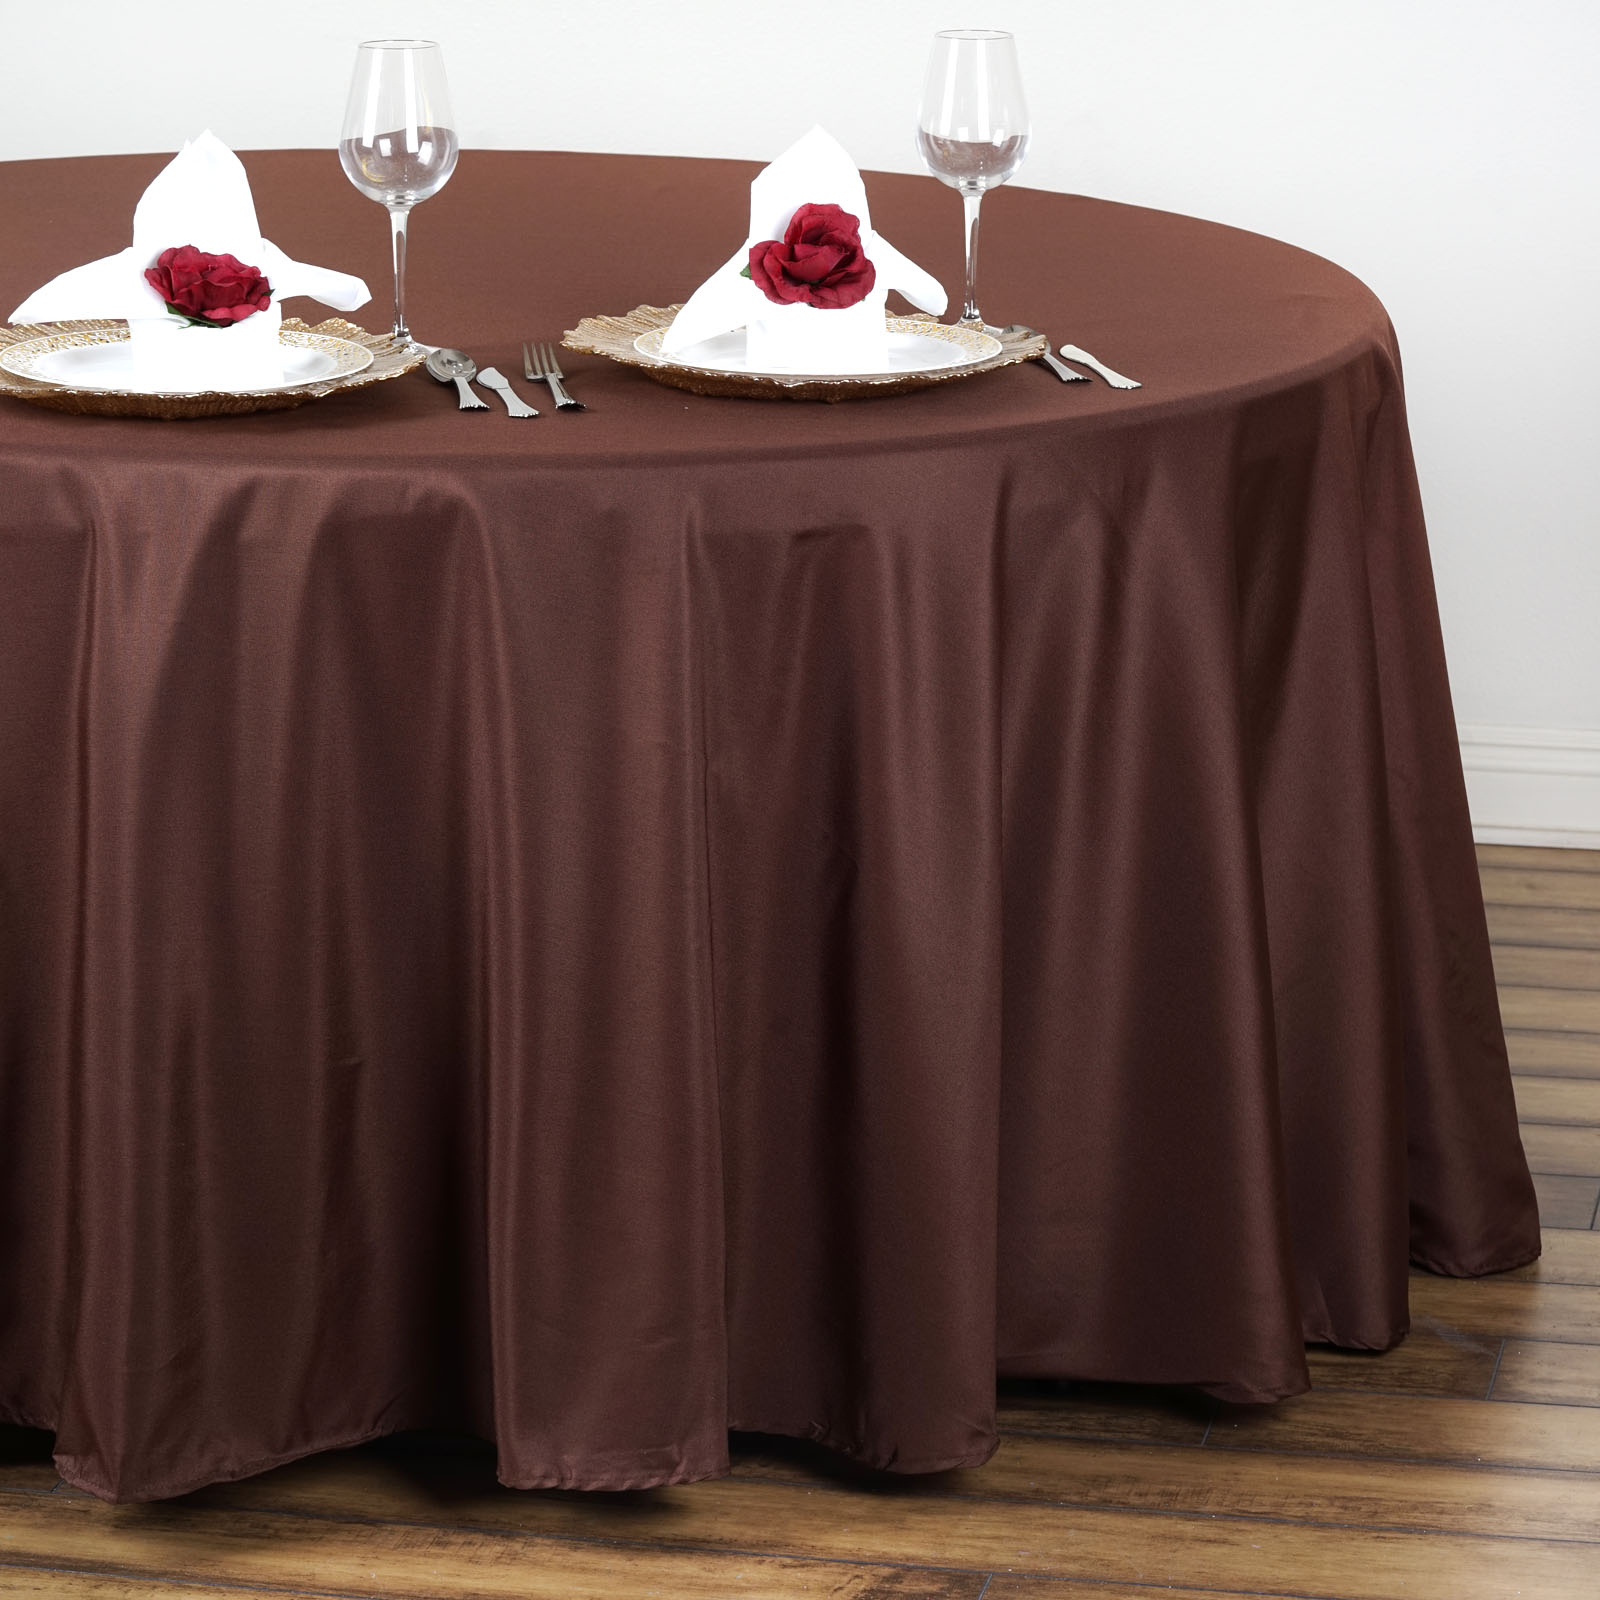 108 round polyester tablecloth ebay for 108 round table cloth